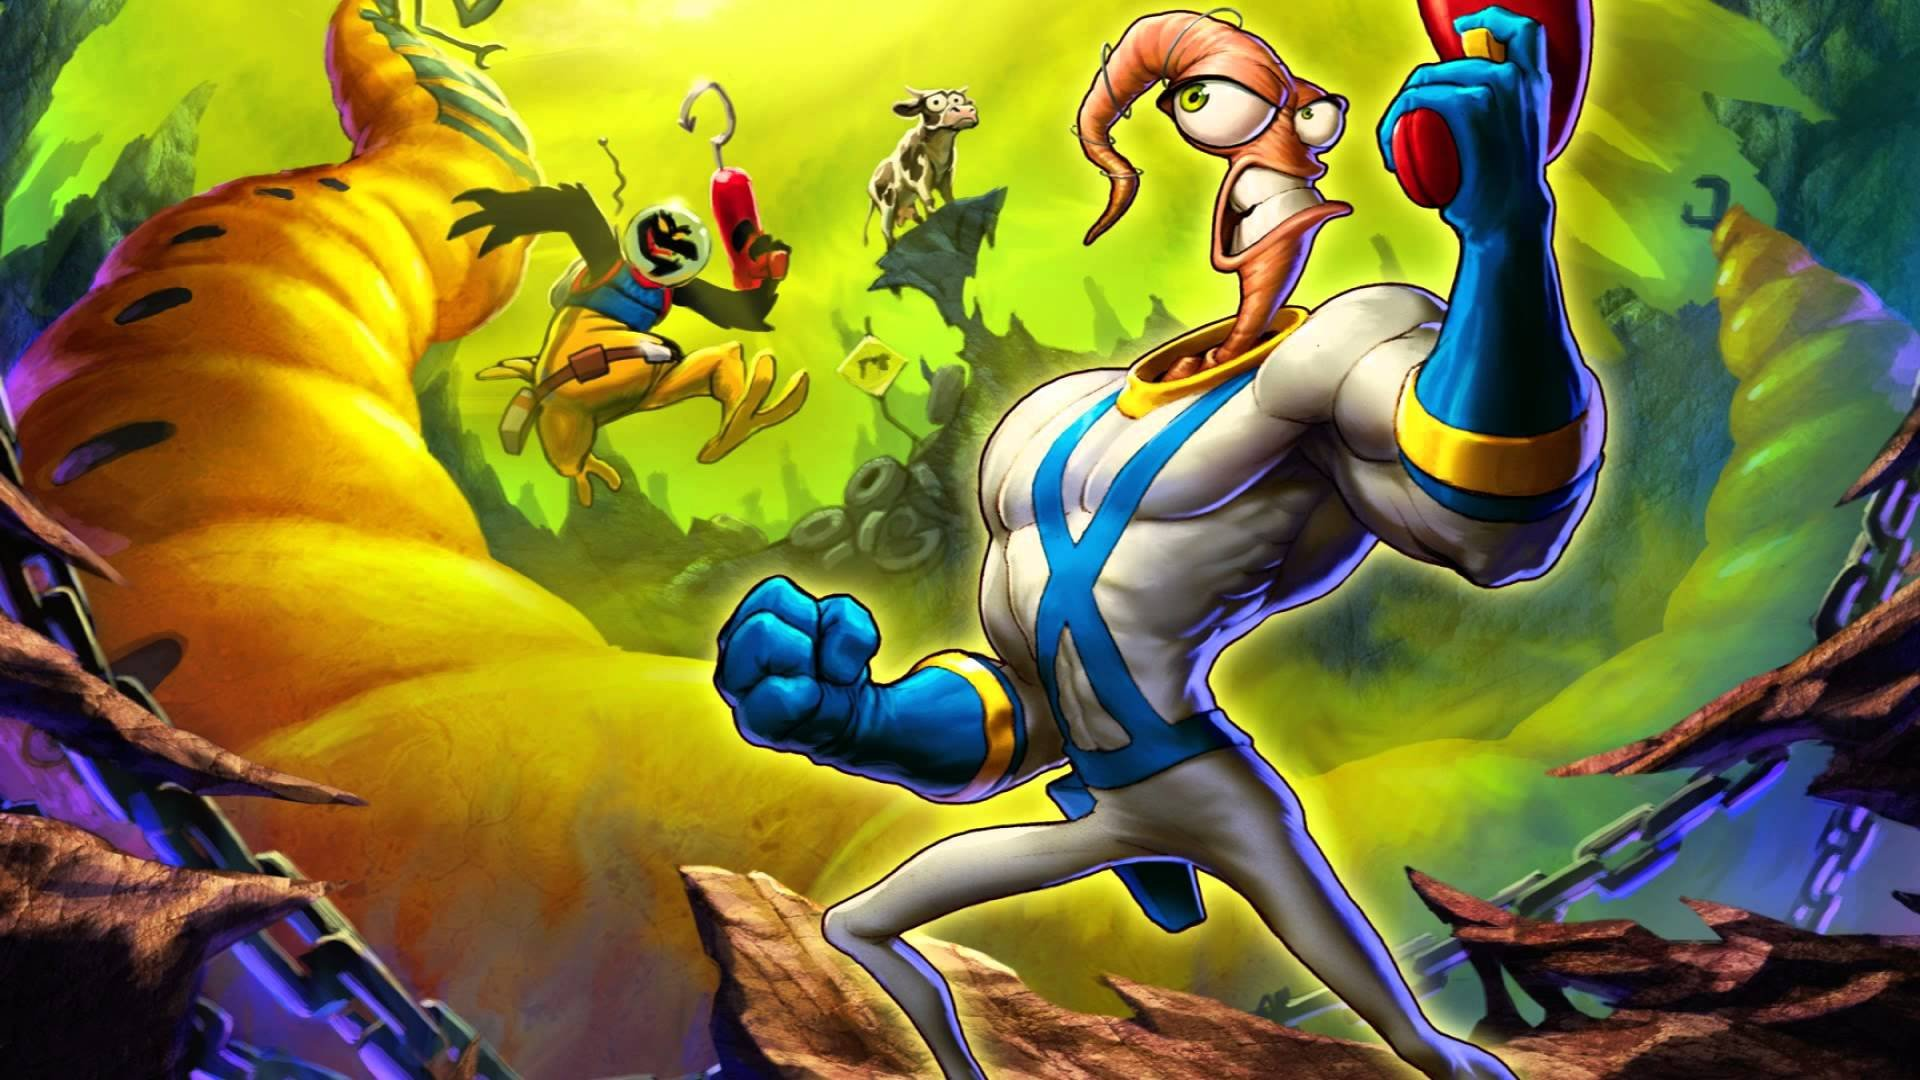 Intellivision's new console will feature a brand new Earthworm Jim title